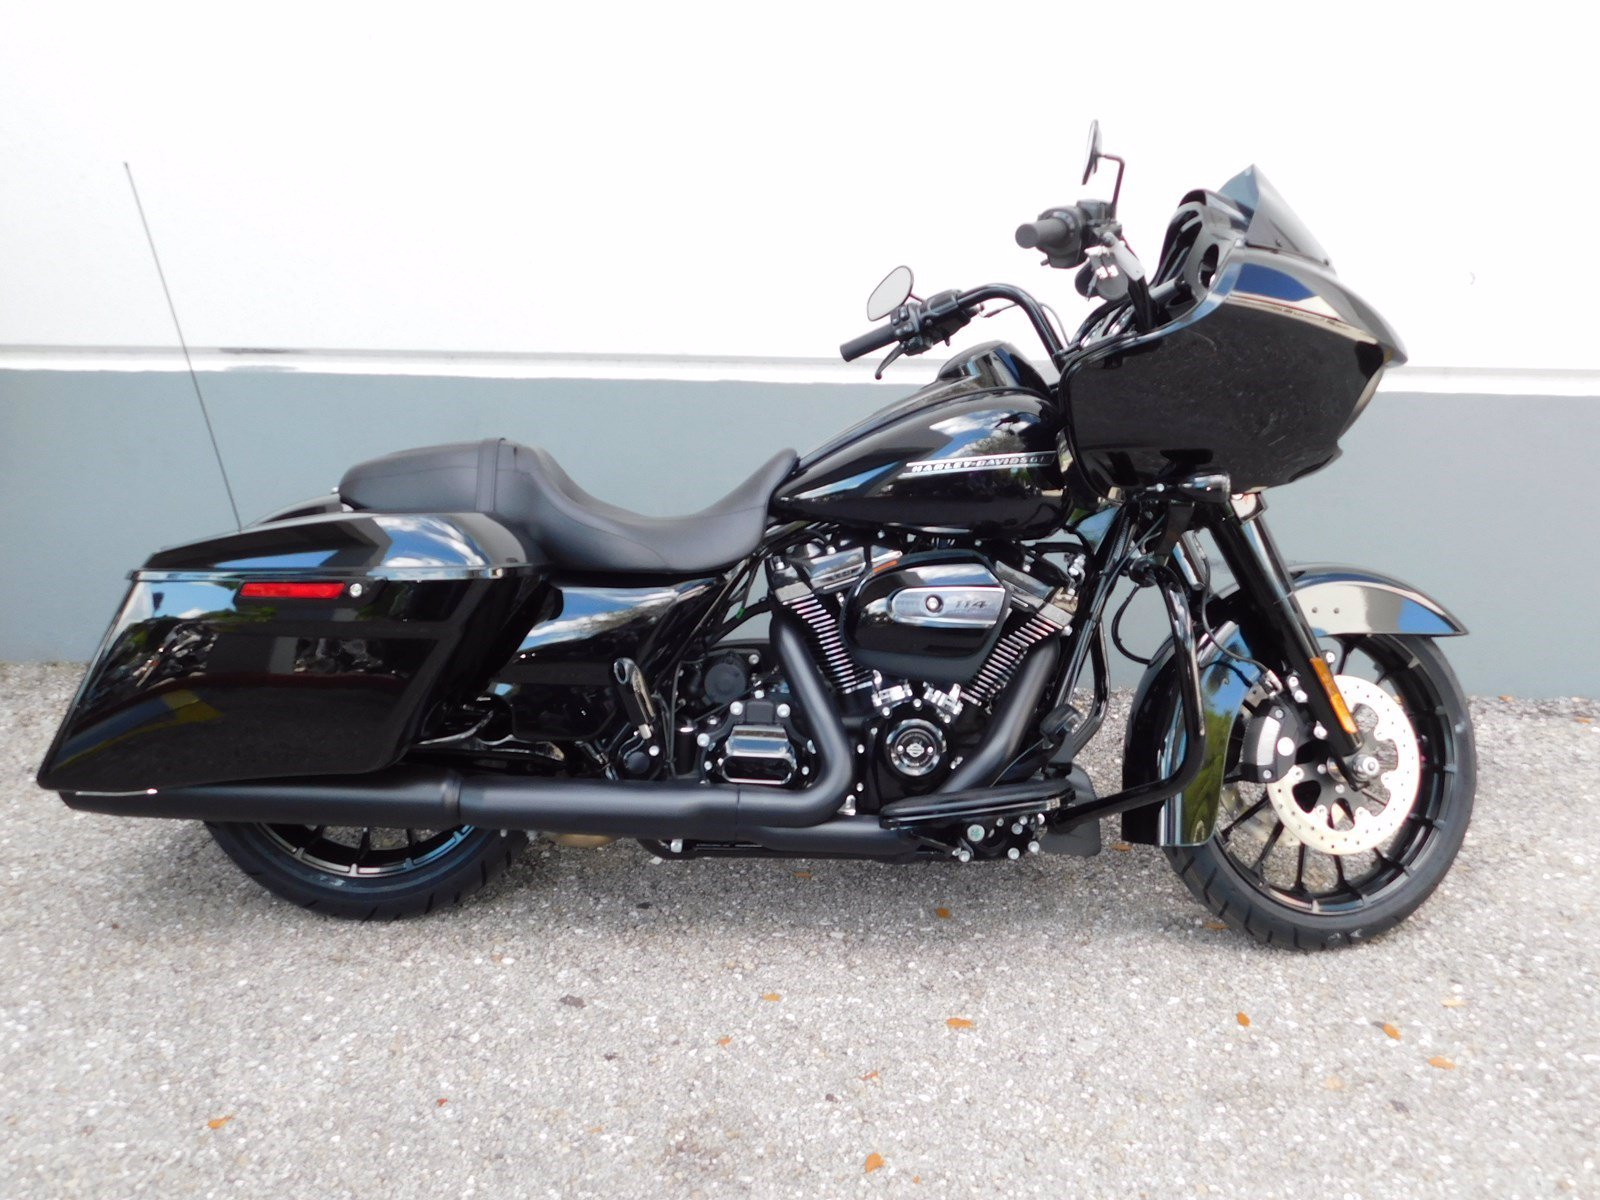 New 2019 Harley-Davidson Road Glide Special FLTRXS Touring ...